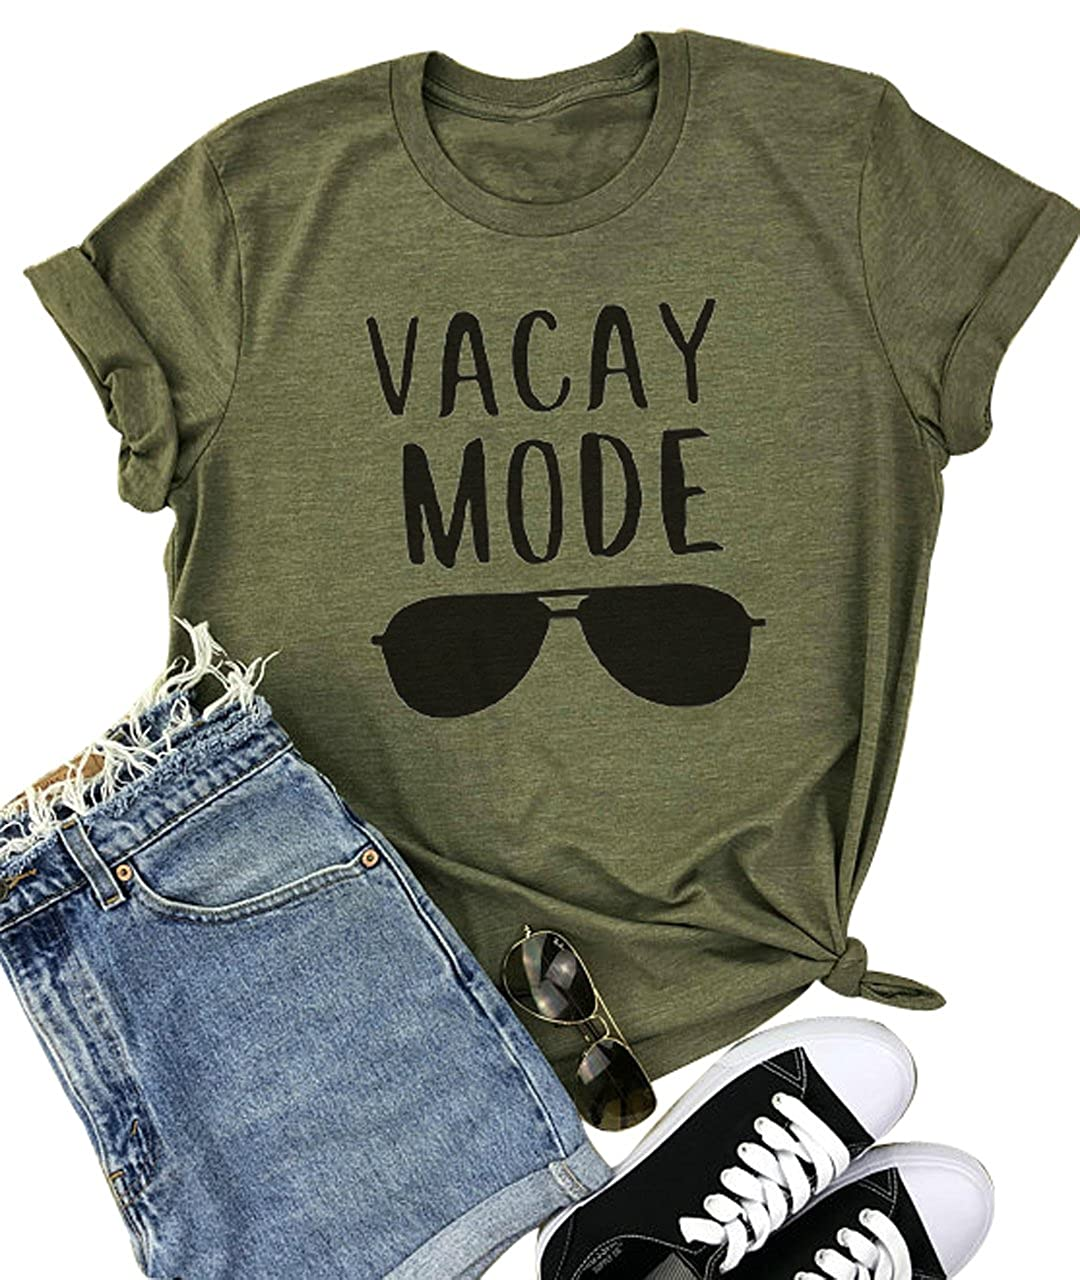 Yuyueyue Vacay Mode Sunglasses Letter Print T Shirt Casual Short